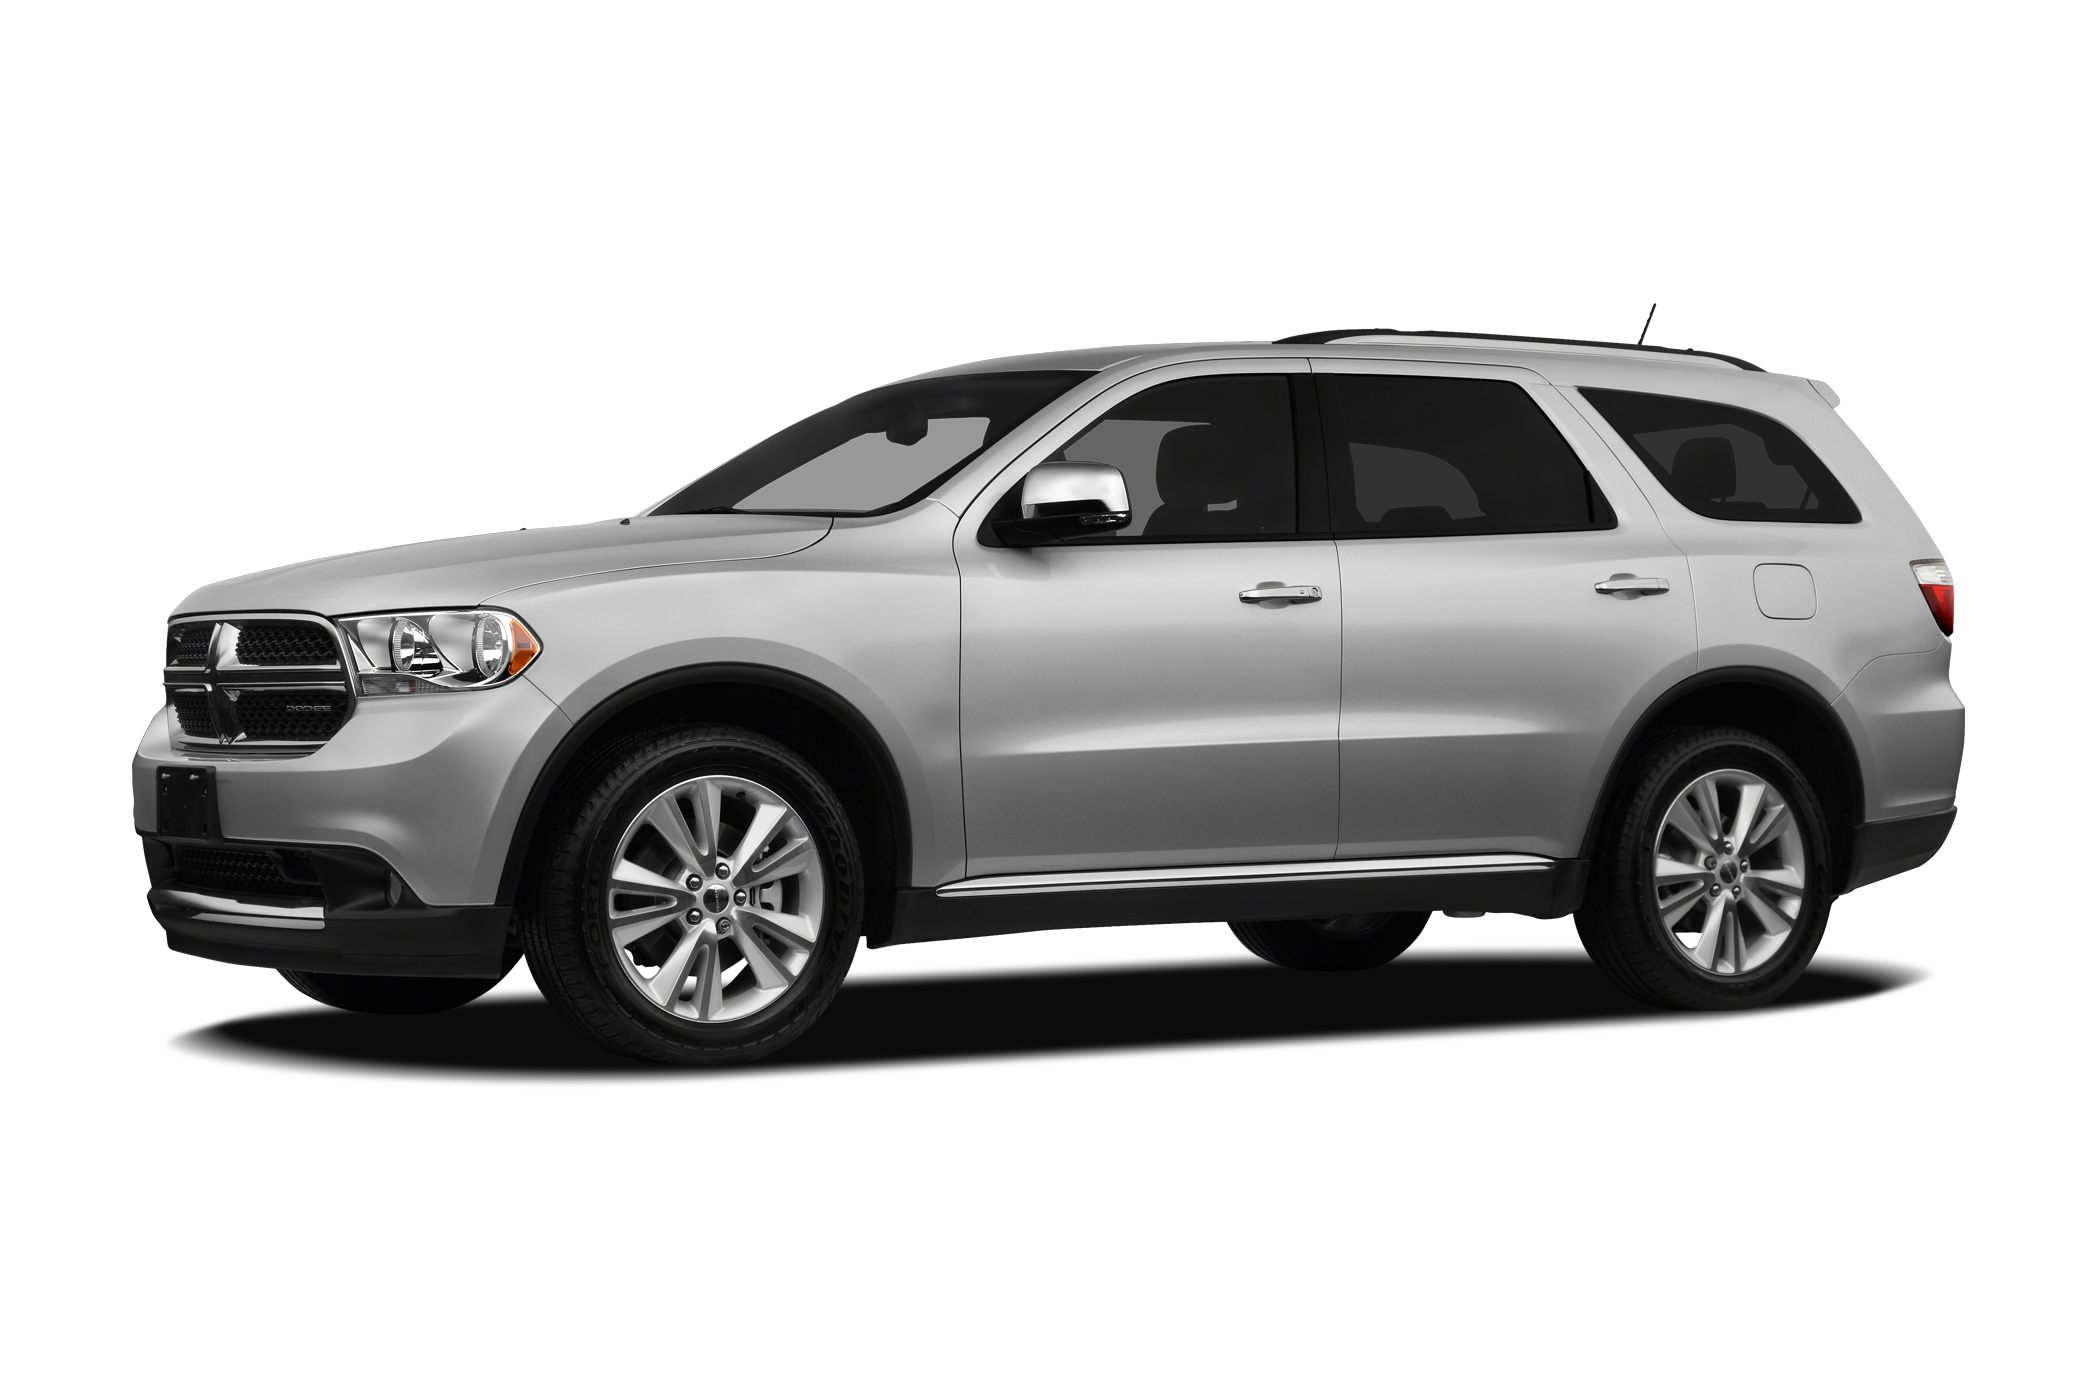 2011 Dodge Durango Crew Just Arrived Tired of the same dull drive Well change up things with th